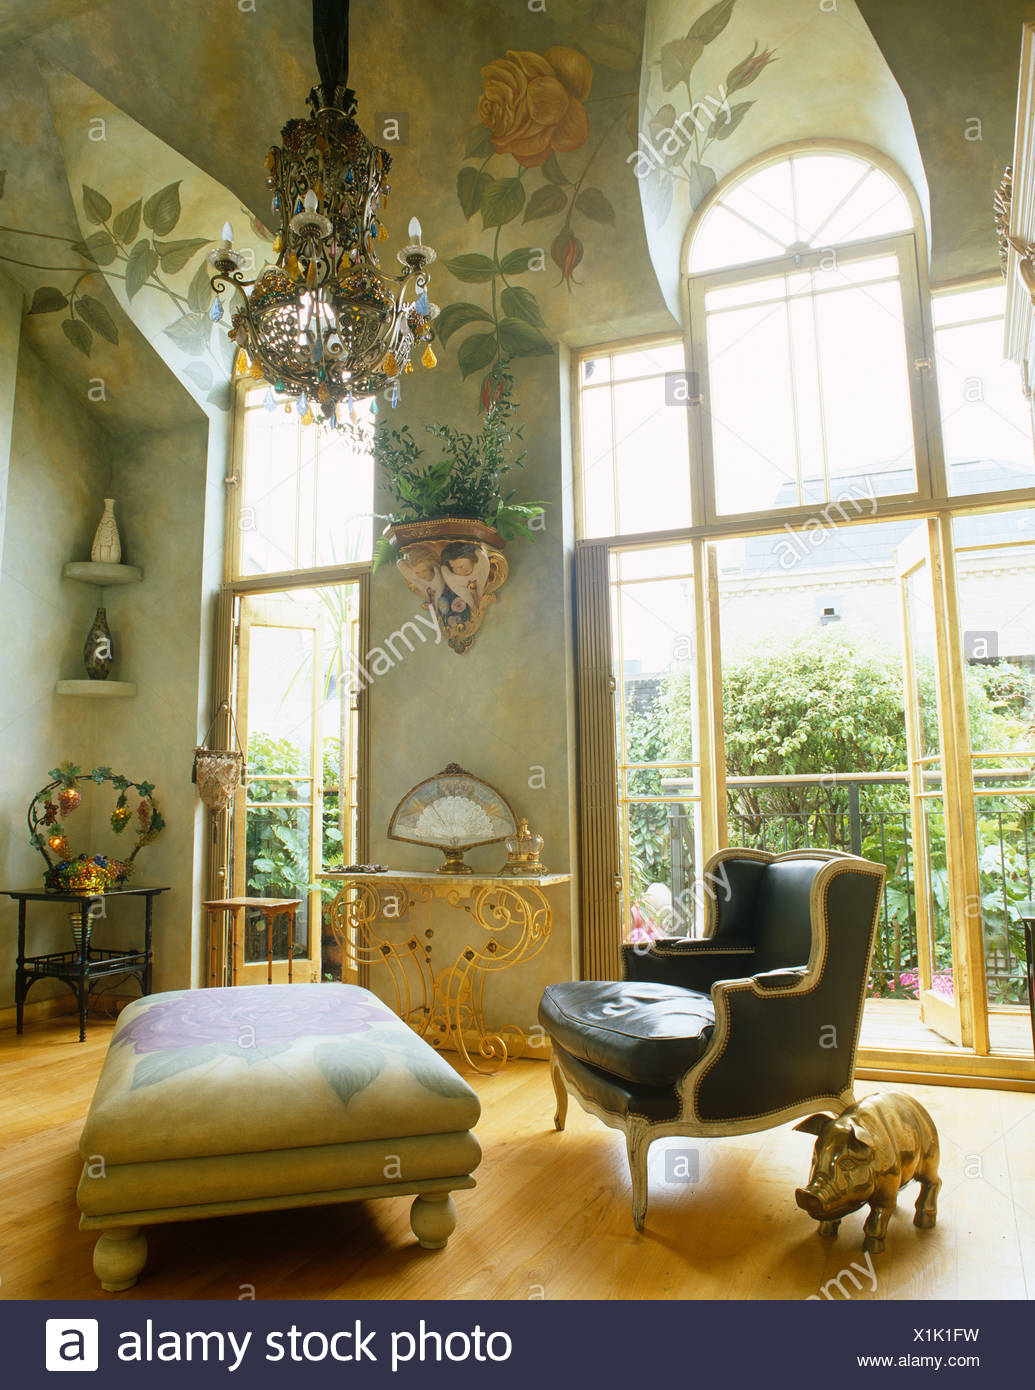 French Style Armchair And Ottoman In Living Room With High, Rose Painted  Ceiling And French Windows